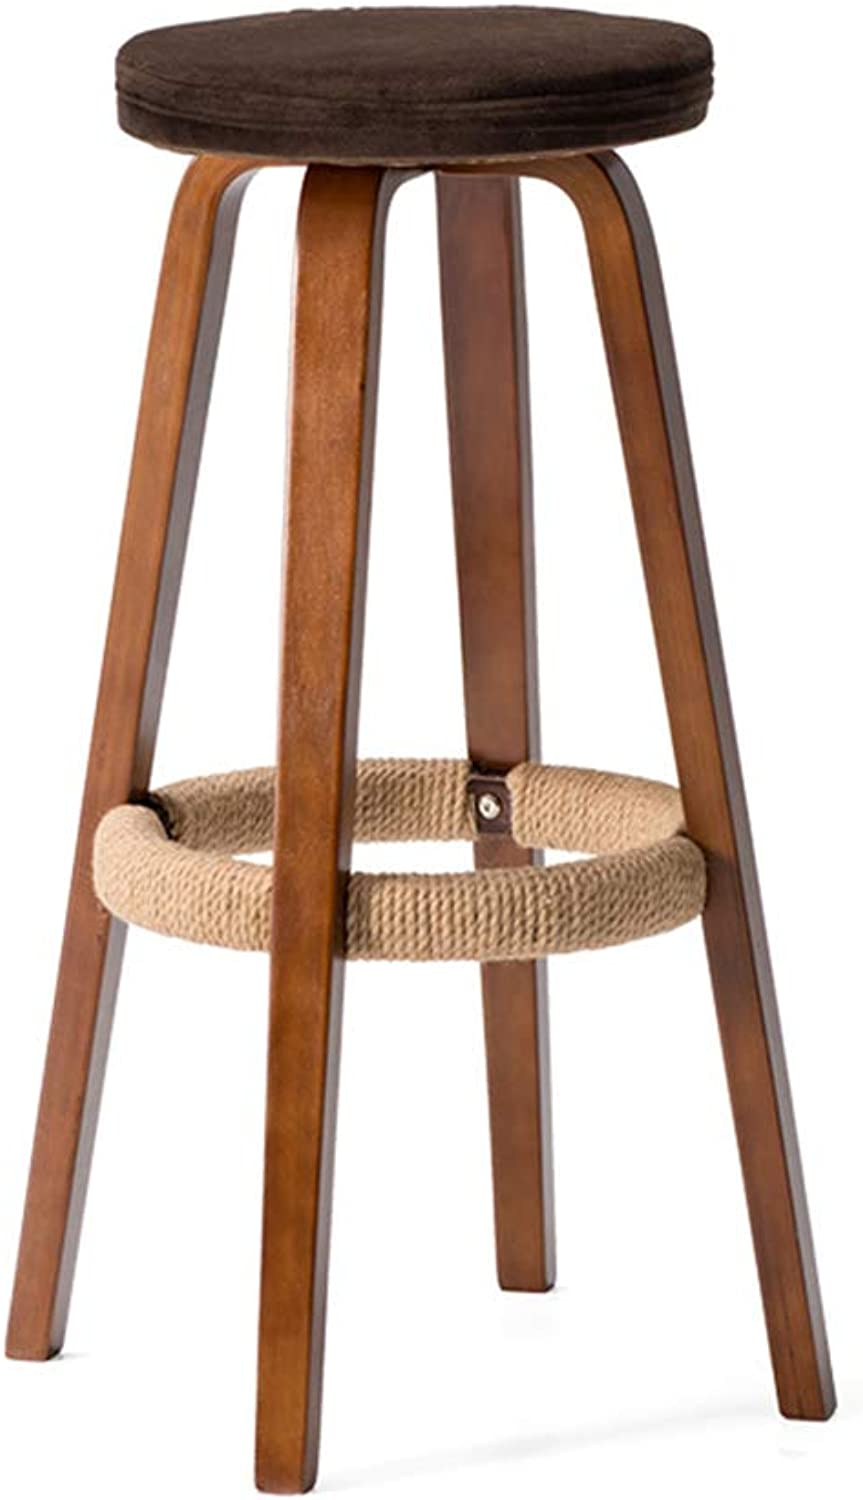 Bar Chairs Breakfast High Stools Modern Wooden High Stools Simple Round Bar Stools Suitable for Counter Kitchen Home Cafe Patio